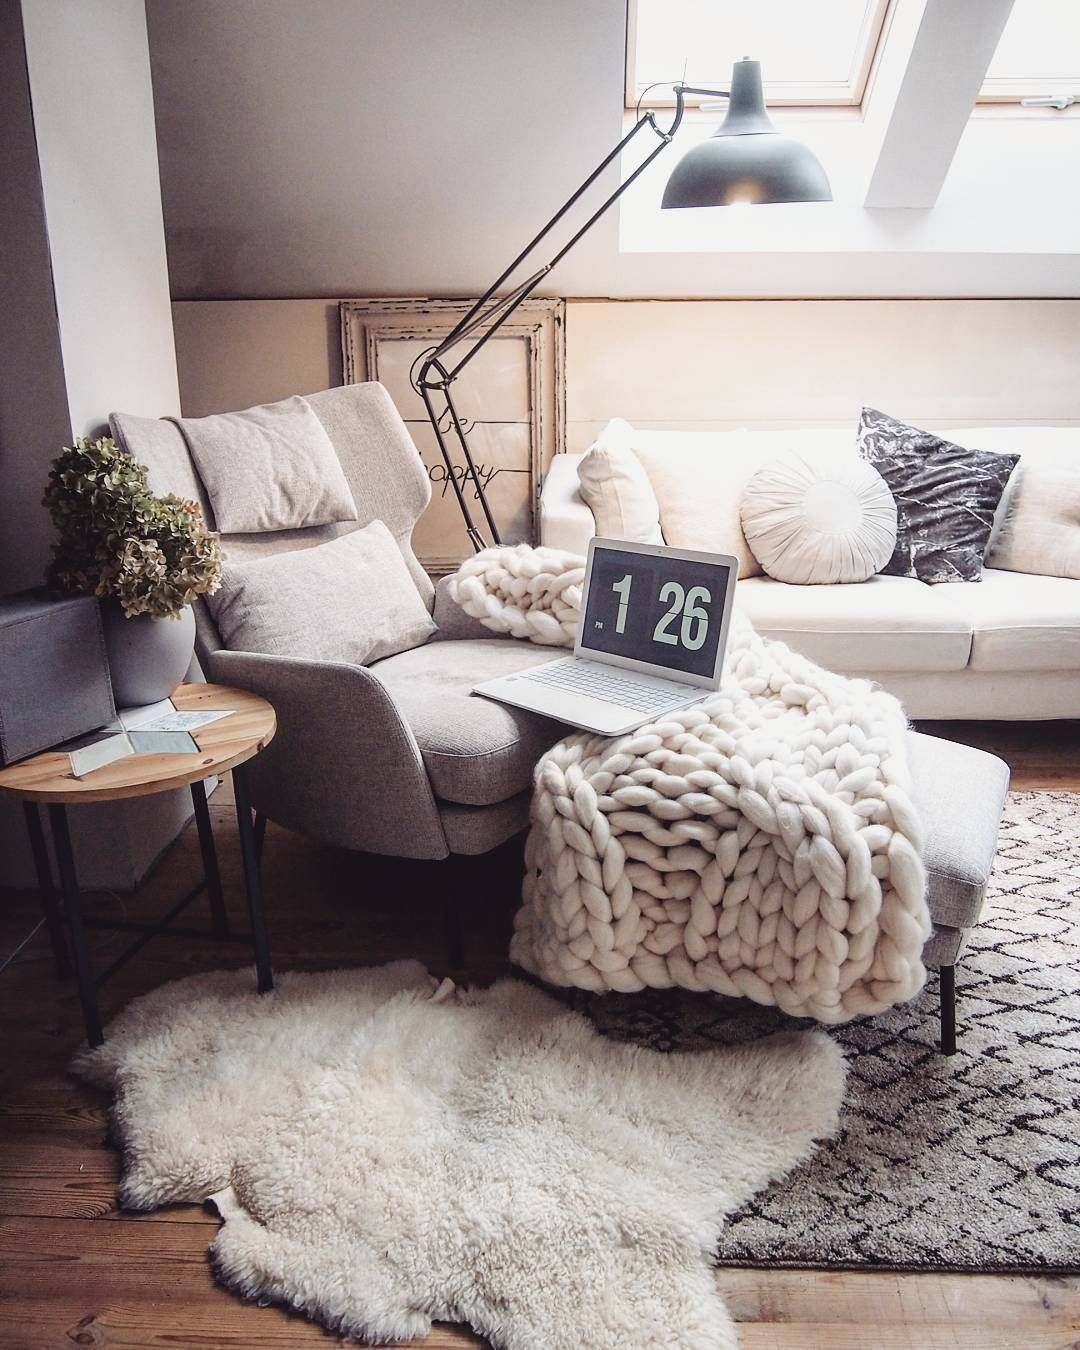 Cozy Home Decor Ideas To Be More Hygge: Are You Working In Some Living Room Project? We Have The